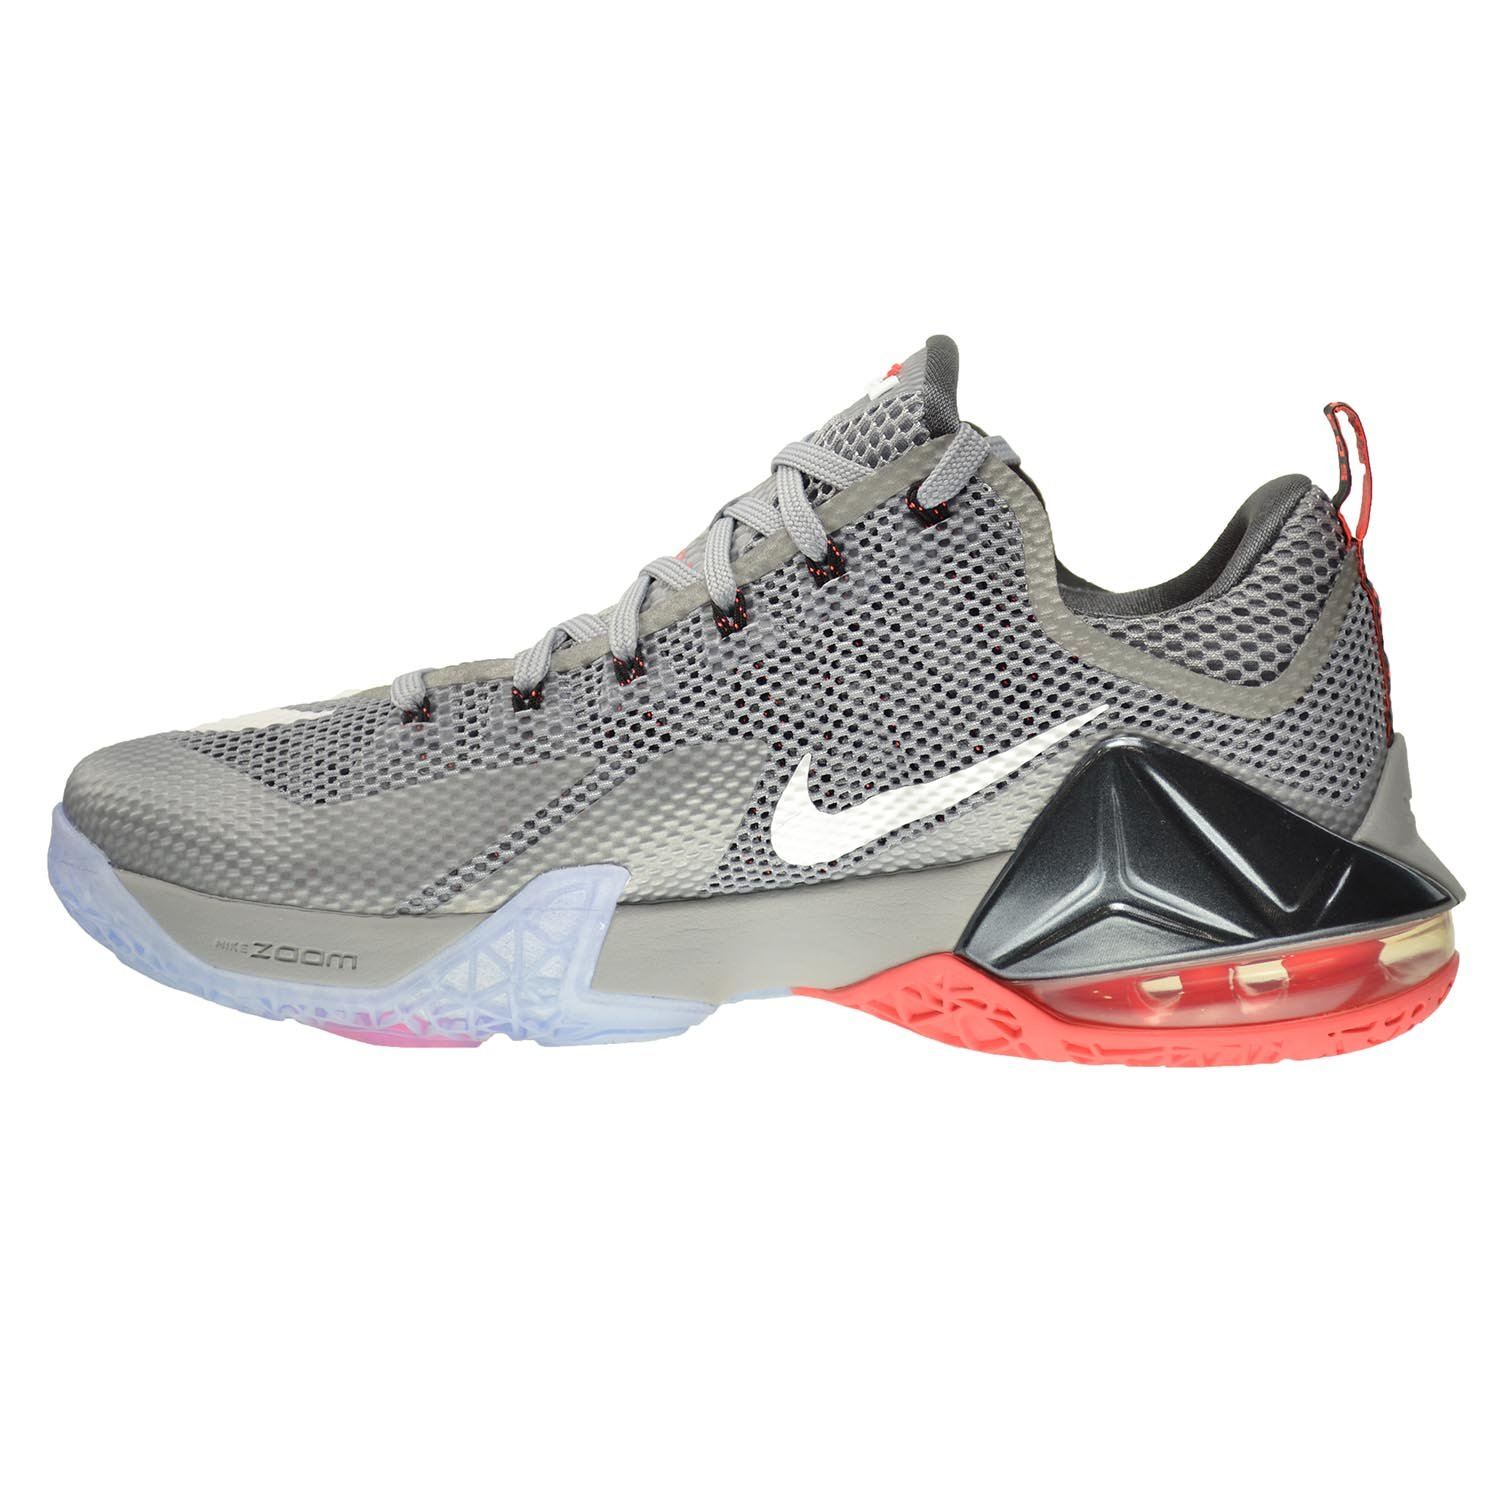 new products 9ddb6 a5992 ... discount code for amazon nike lebron xii low mens shoes wolf grey white  dark grey hot